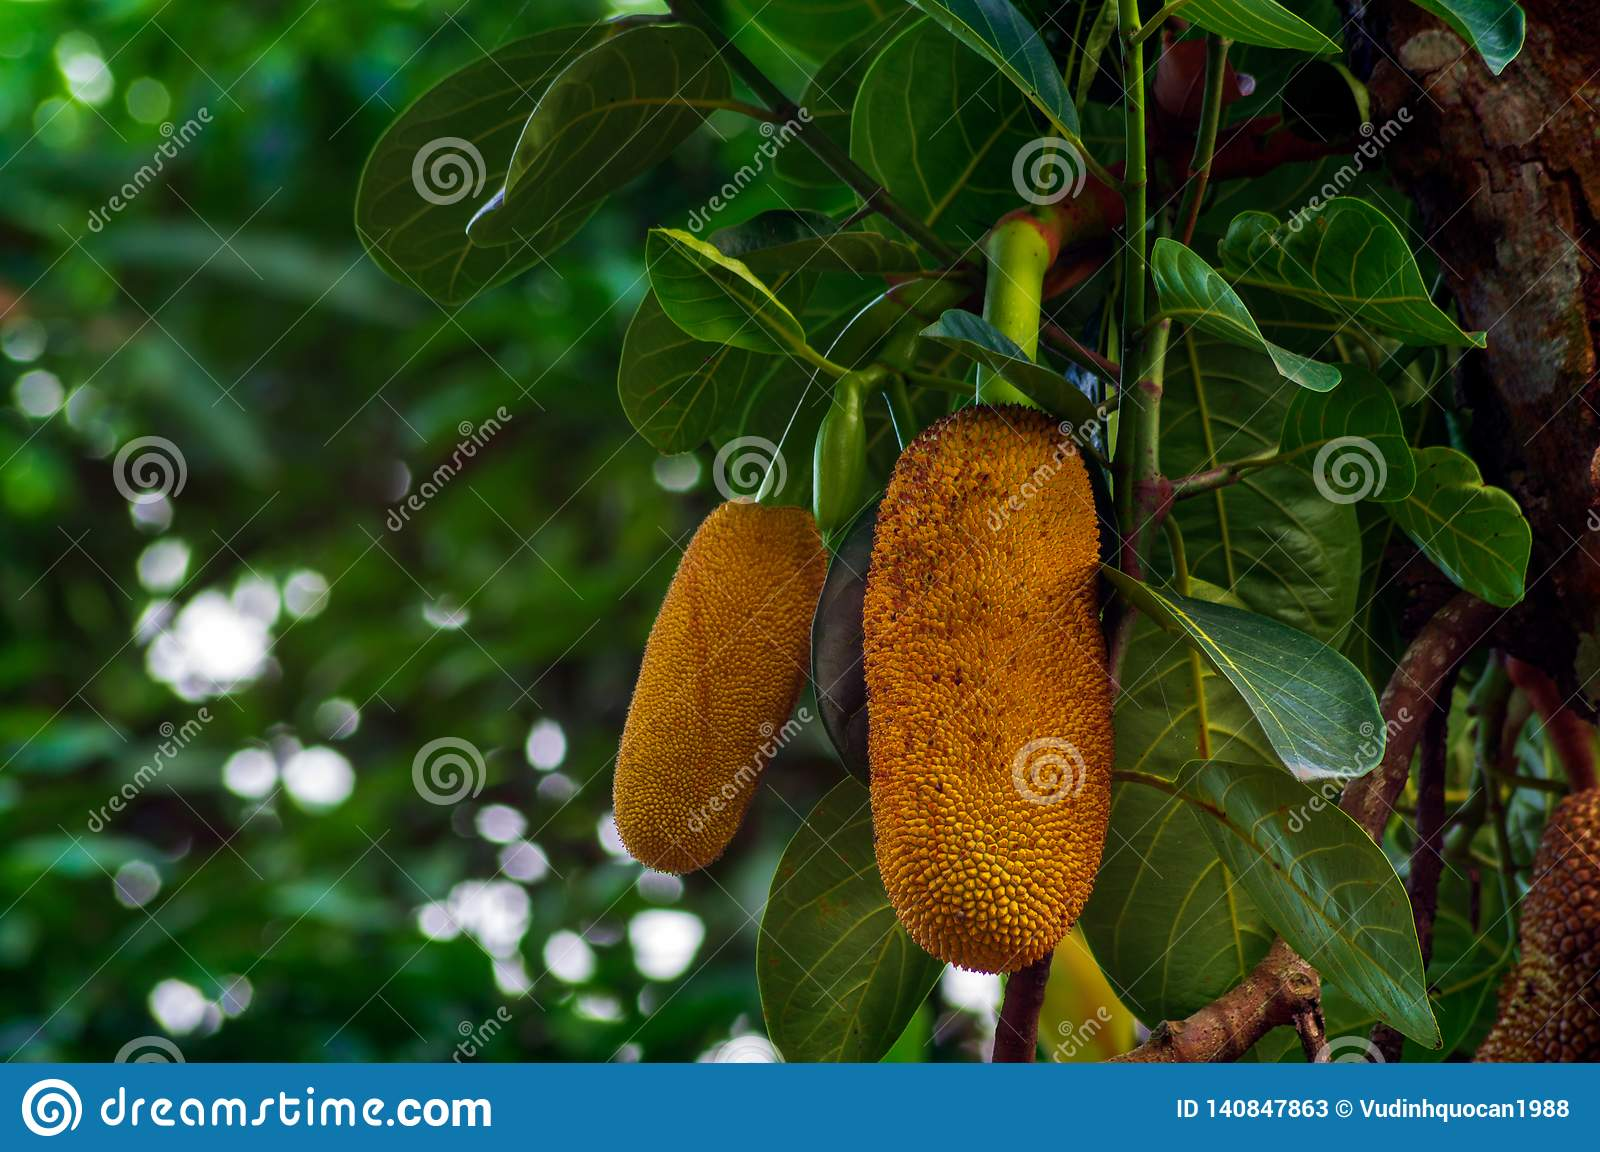 jackfruit from childhood to maturity